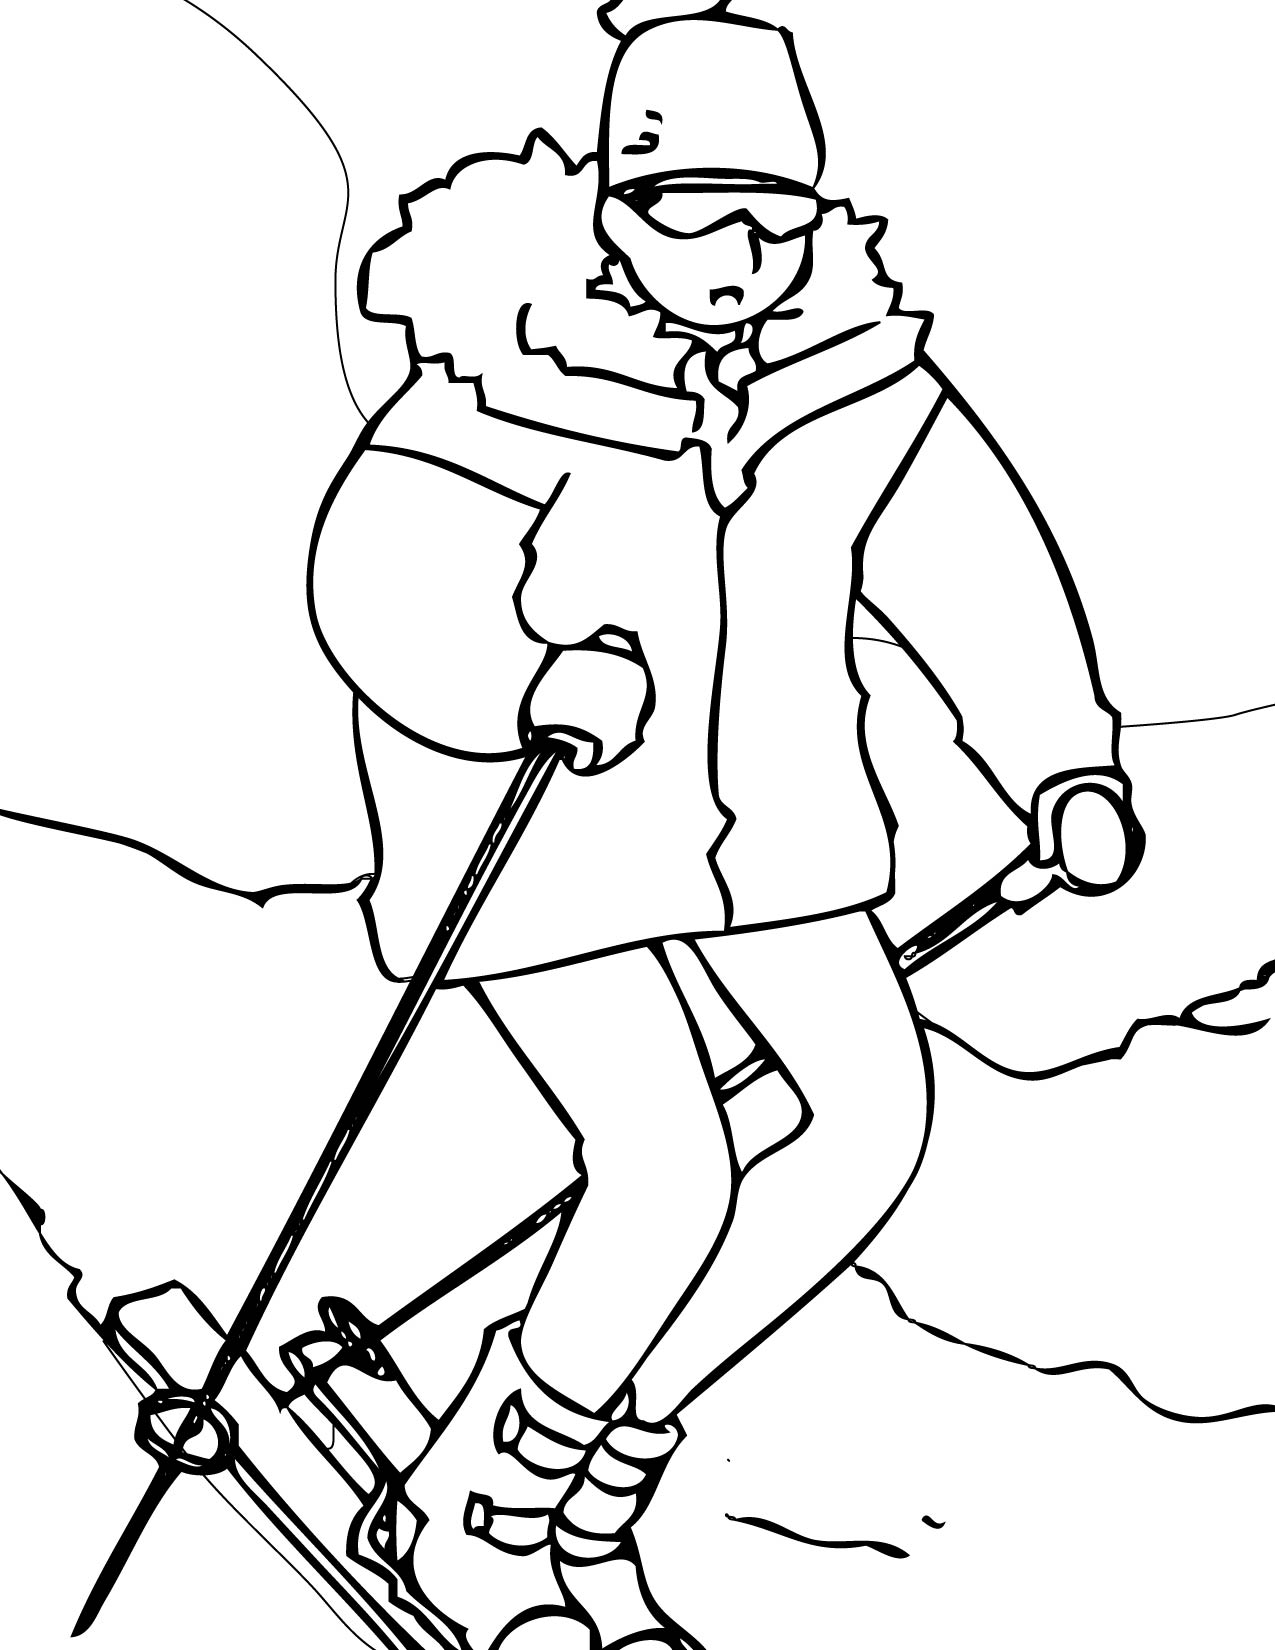 Winter Sports Coloring Pages - Handipoints